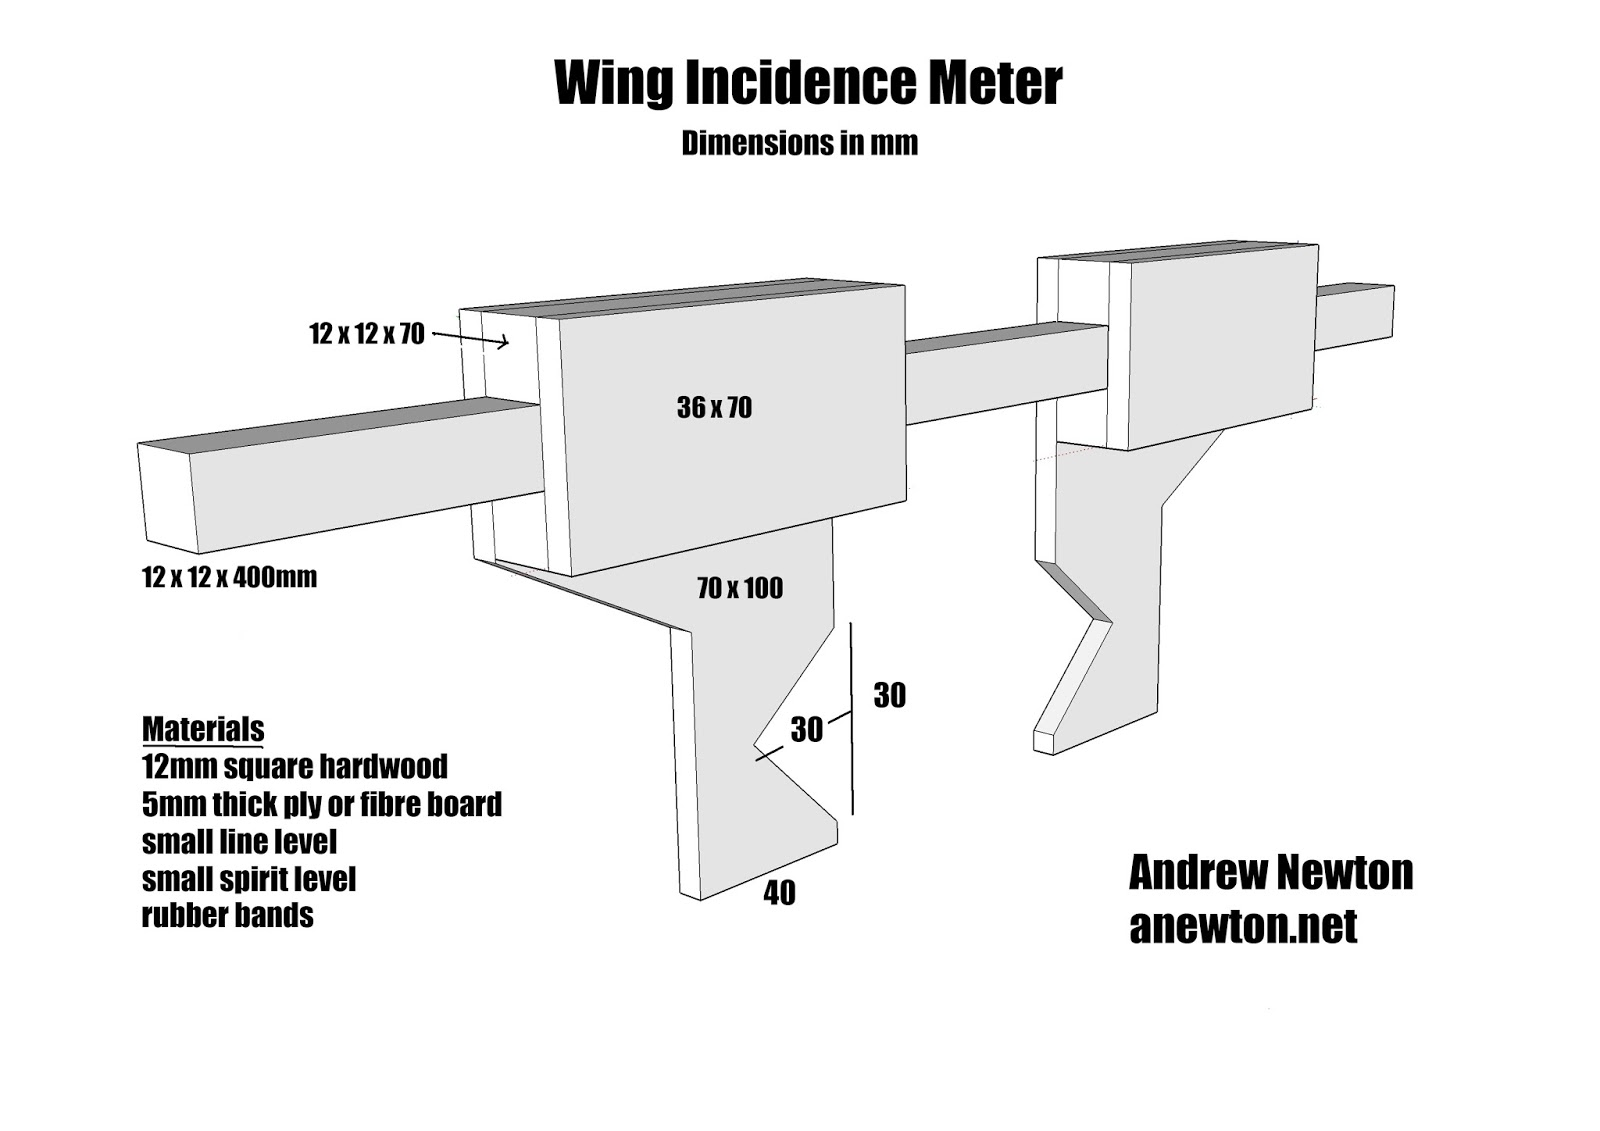 Newton airlines diy wing incidence meter a4 sized plans download and print for your own use pooptronica